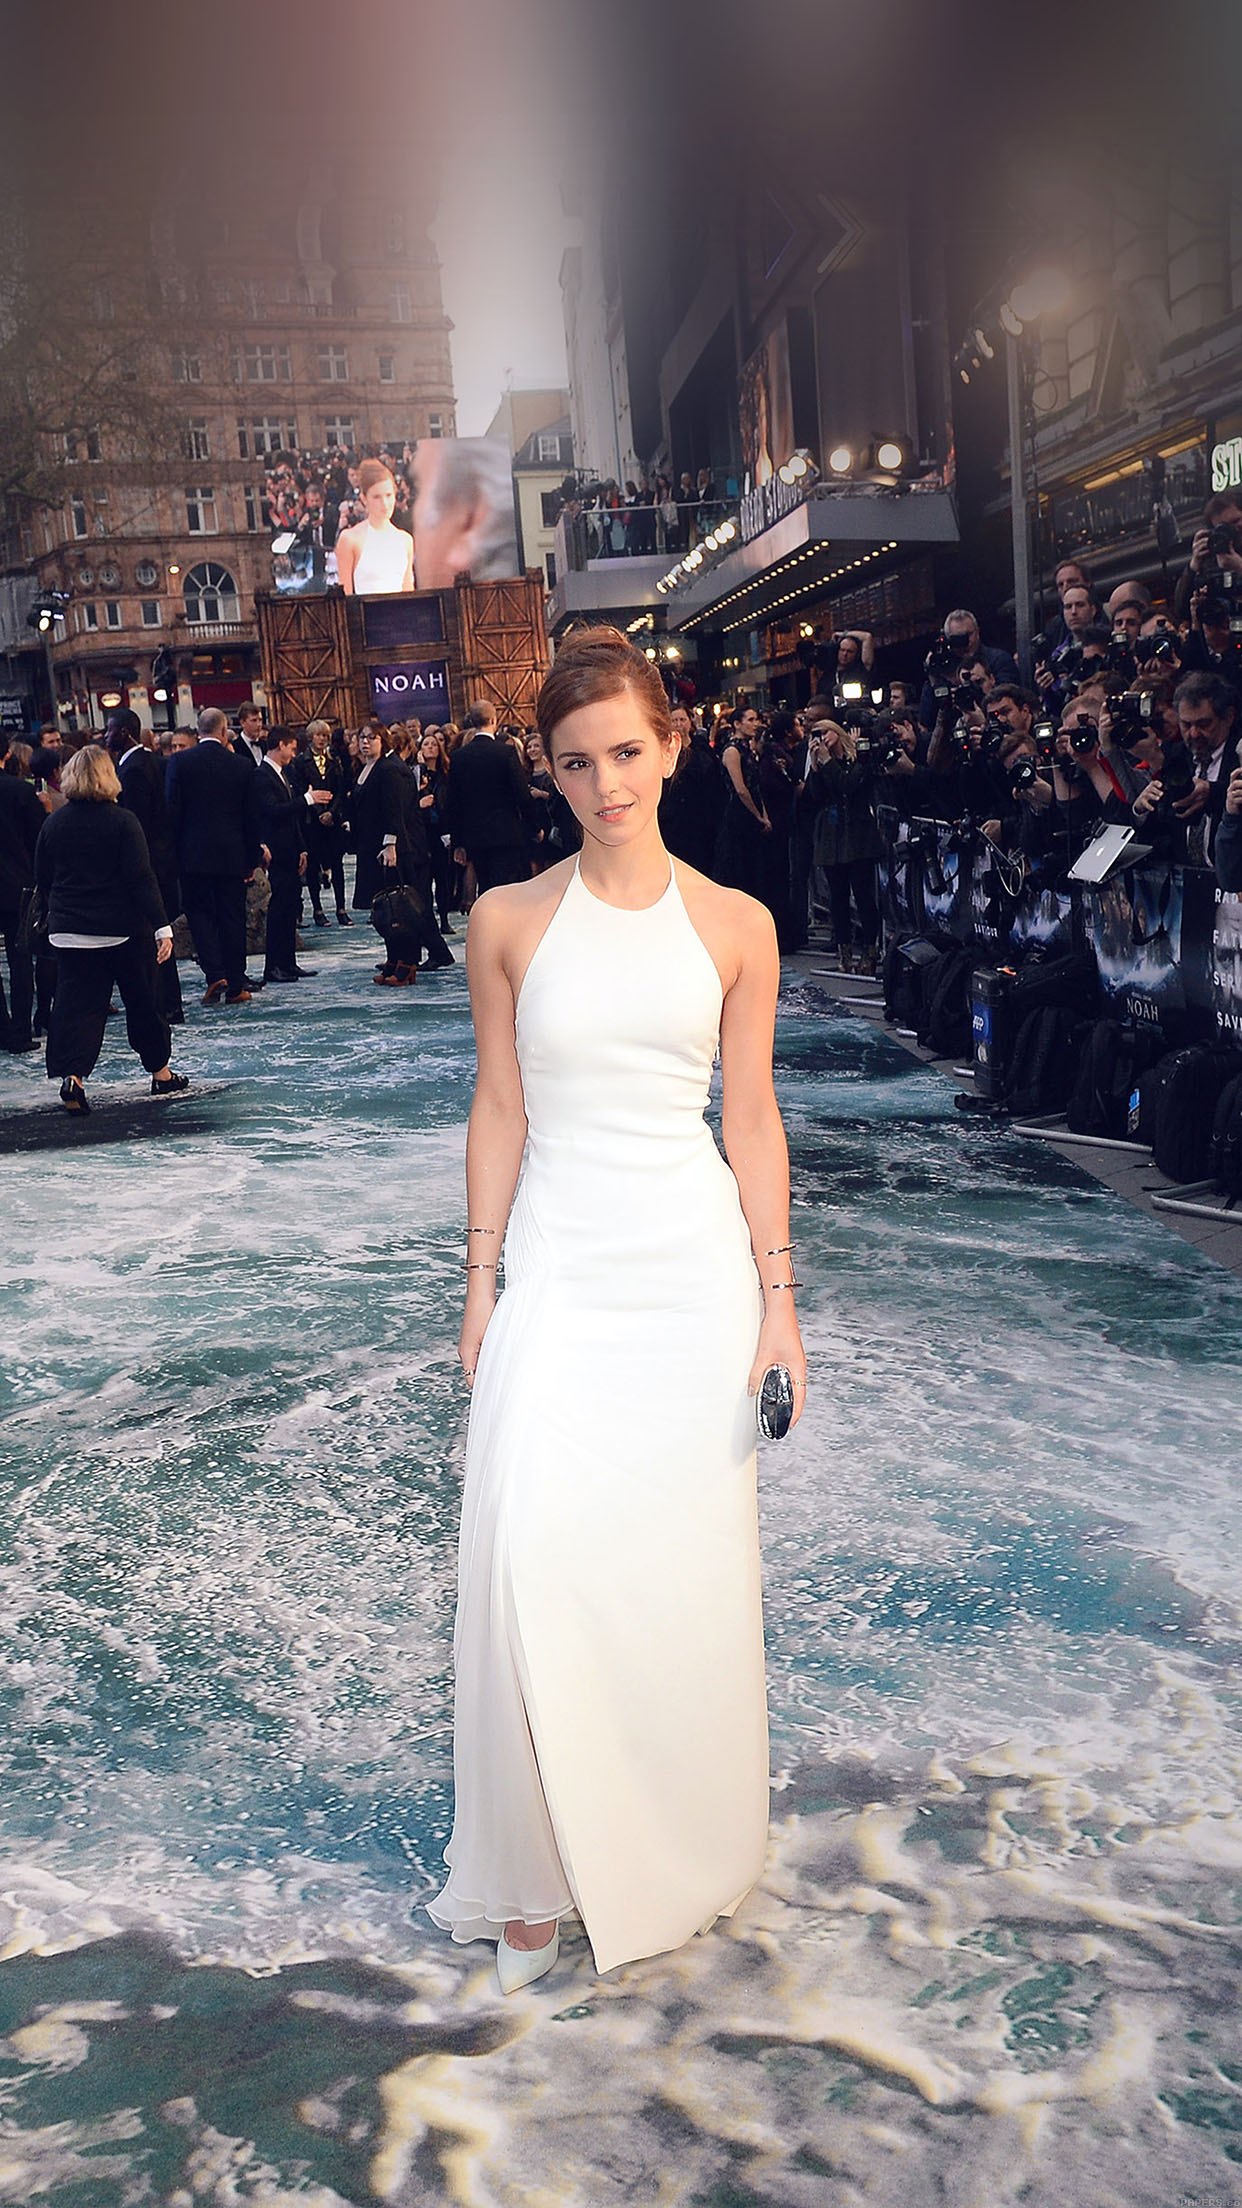 Emma Watson Emma Watson 2 3Wallpapers iPhone Parallax 3Wallpapers : notre sélection de fonds d'écran du 20/11/2016